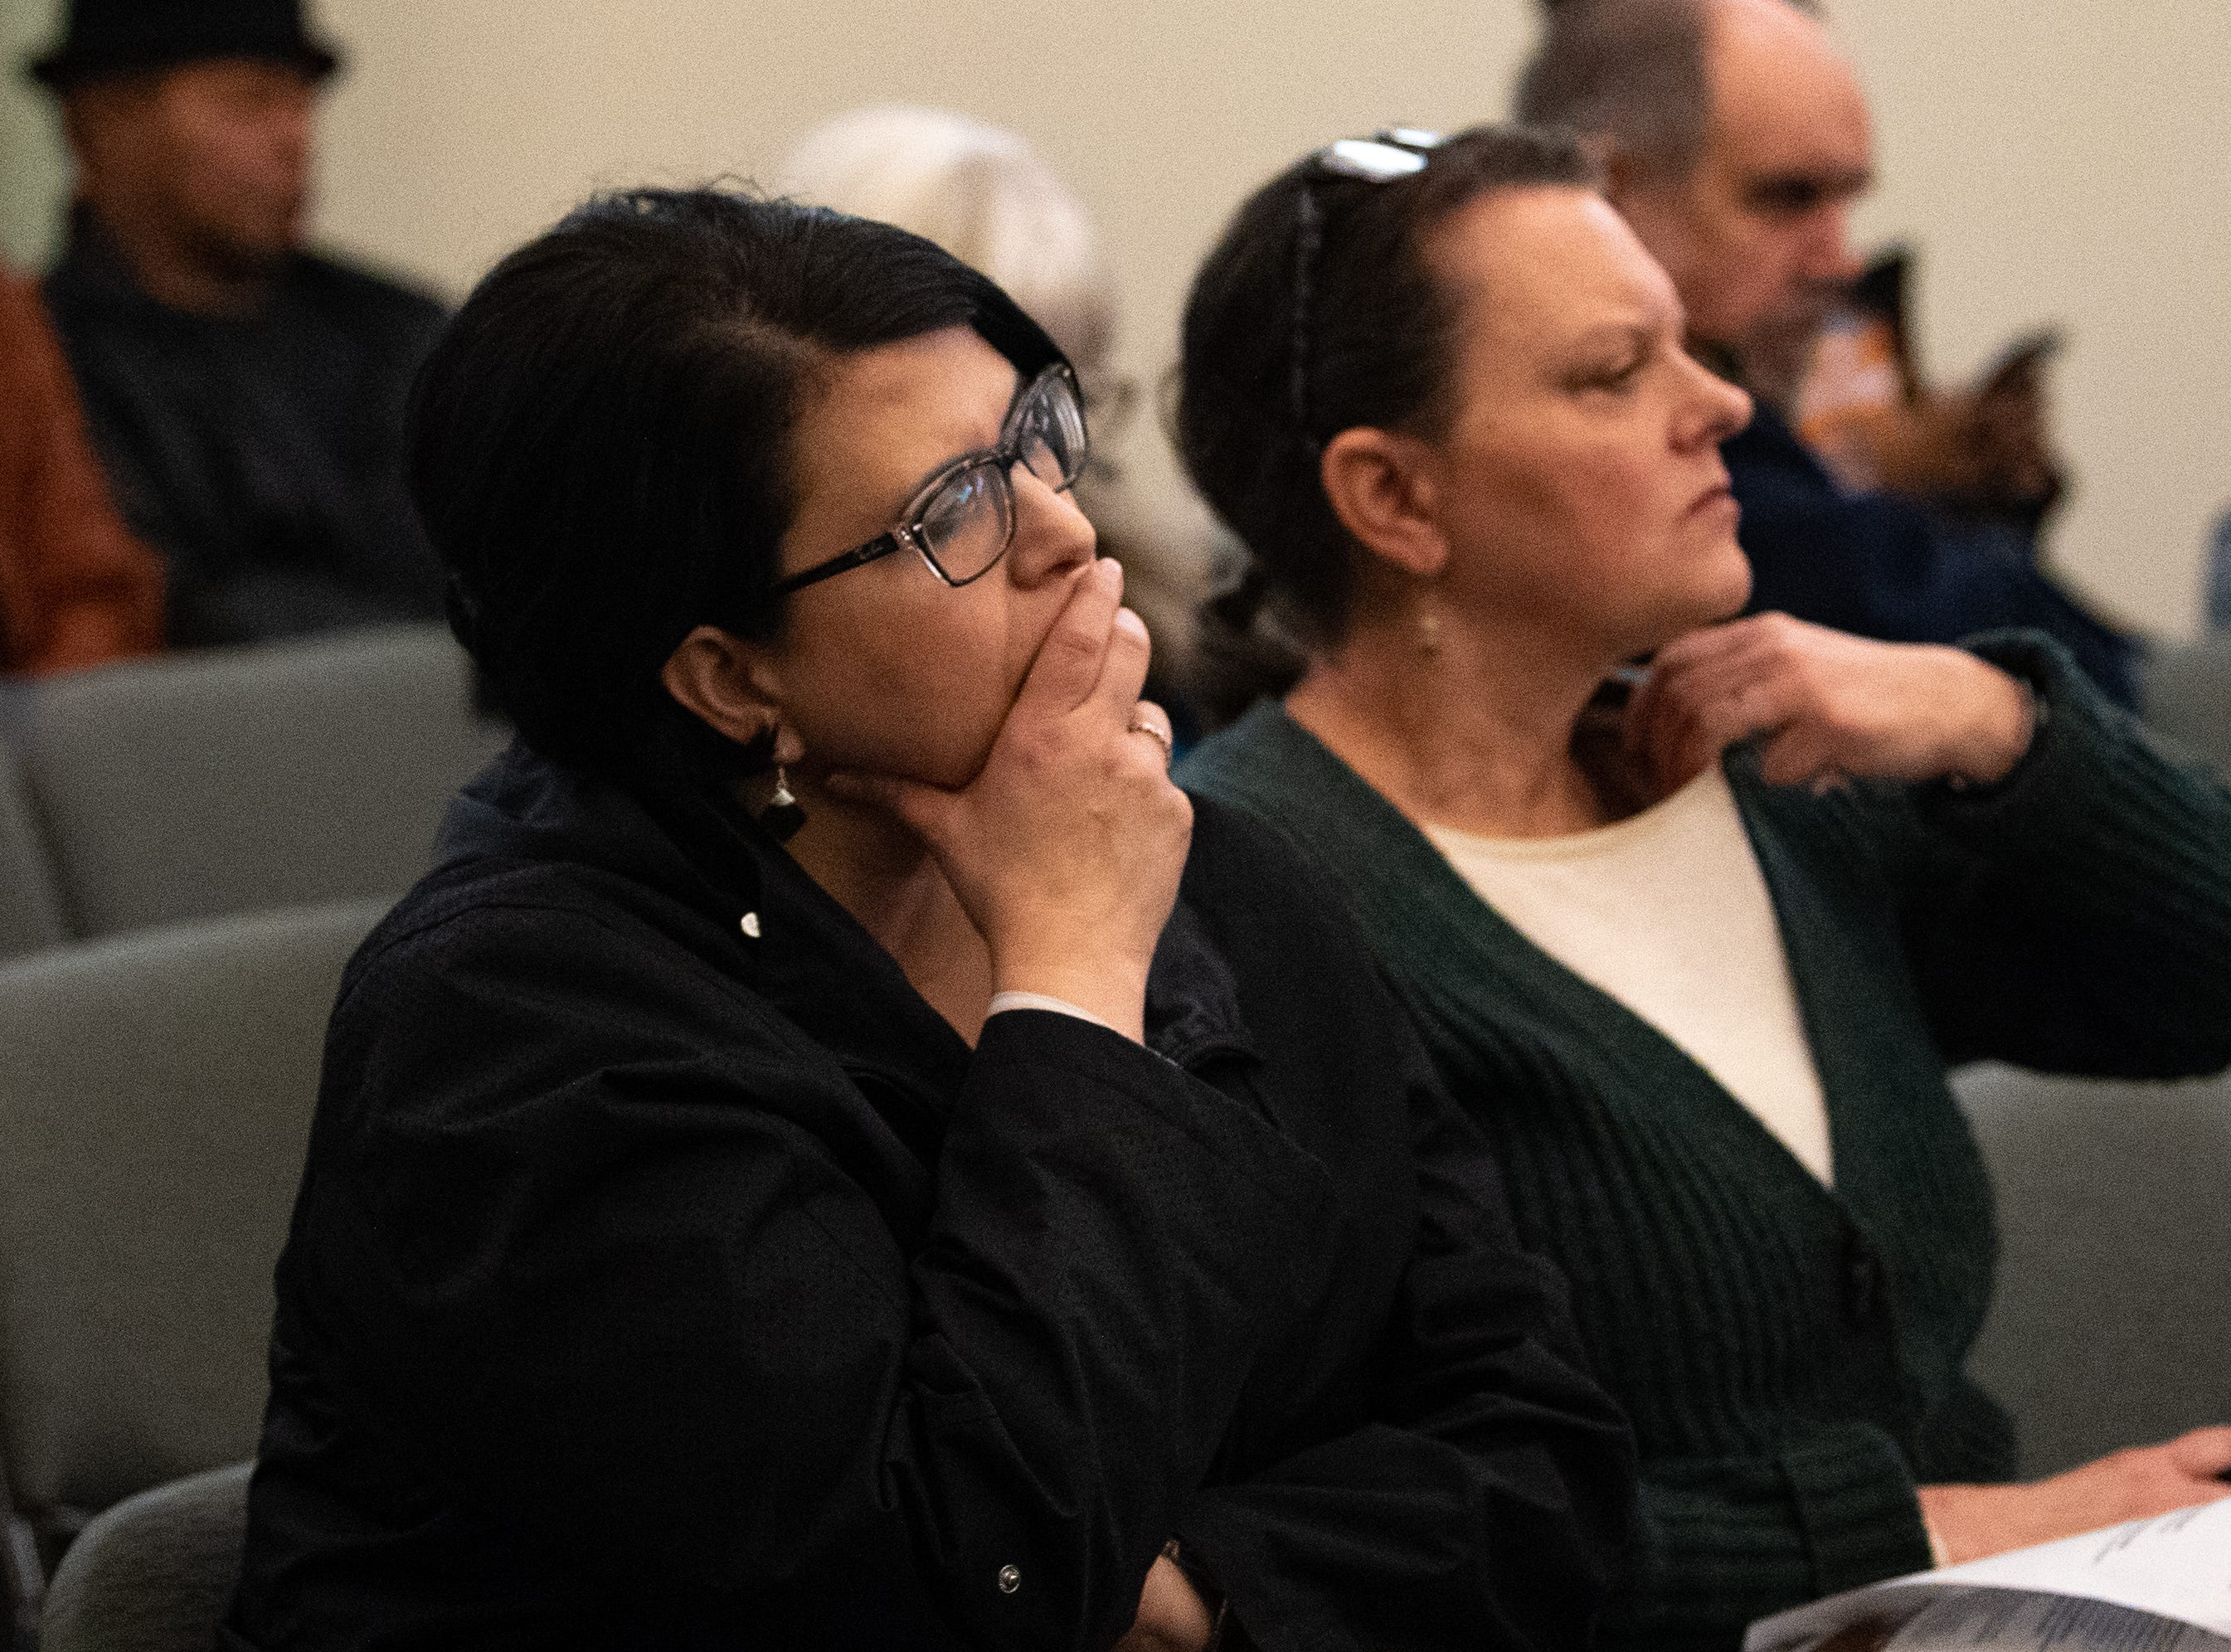 Tammy Bowers (left) listens intently as the speakers share their call to action during the No Hate in Our State town hall meeting at the West Manchester Township Building, December 20, 2018.